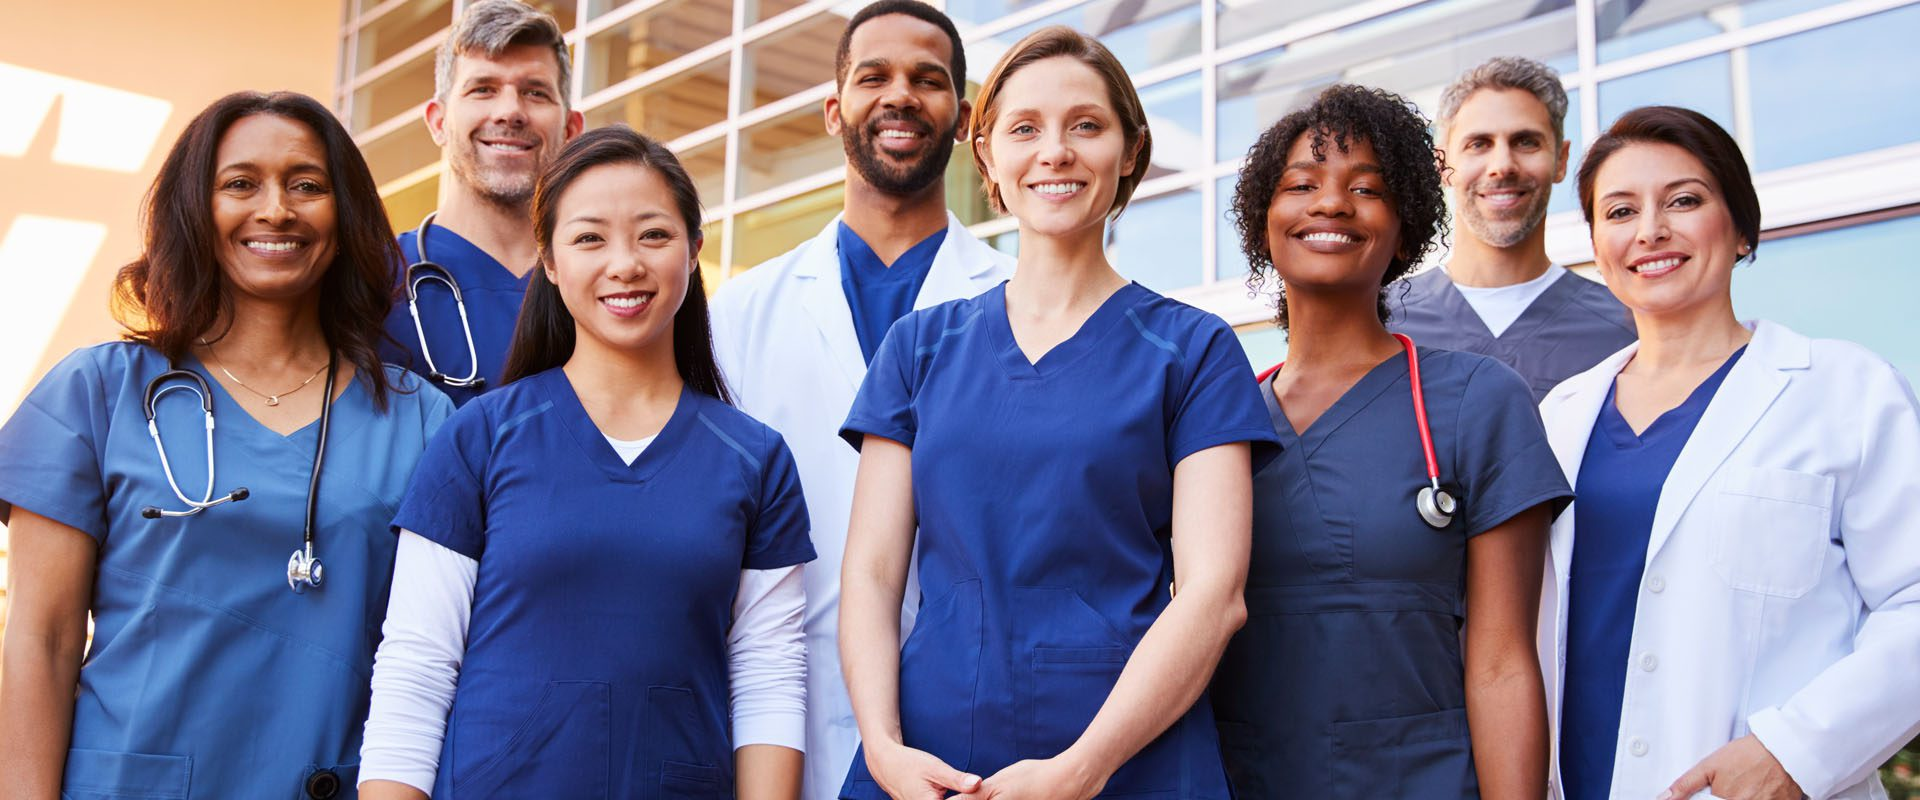 Healthcare Video Production Services Washington DC, Maryland and Northern Virginia